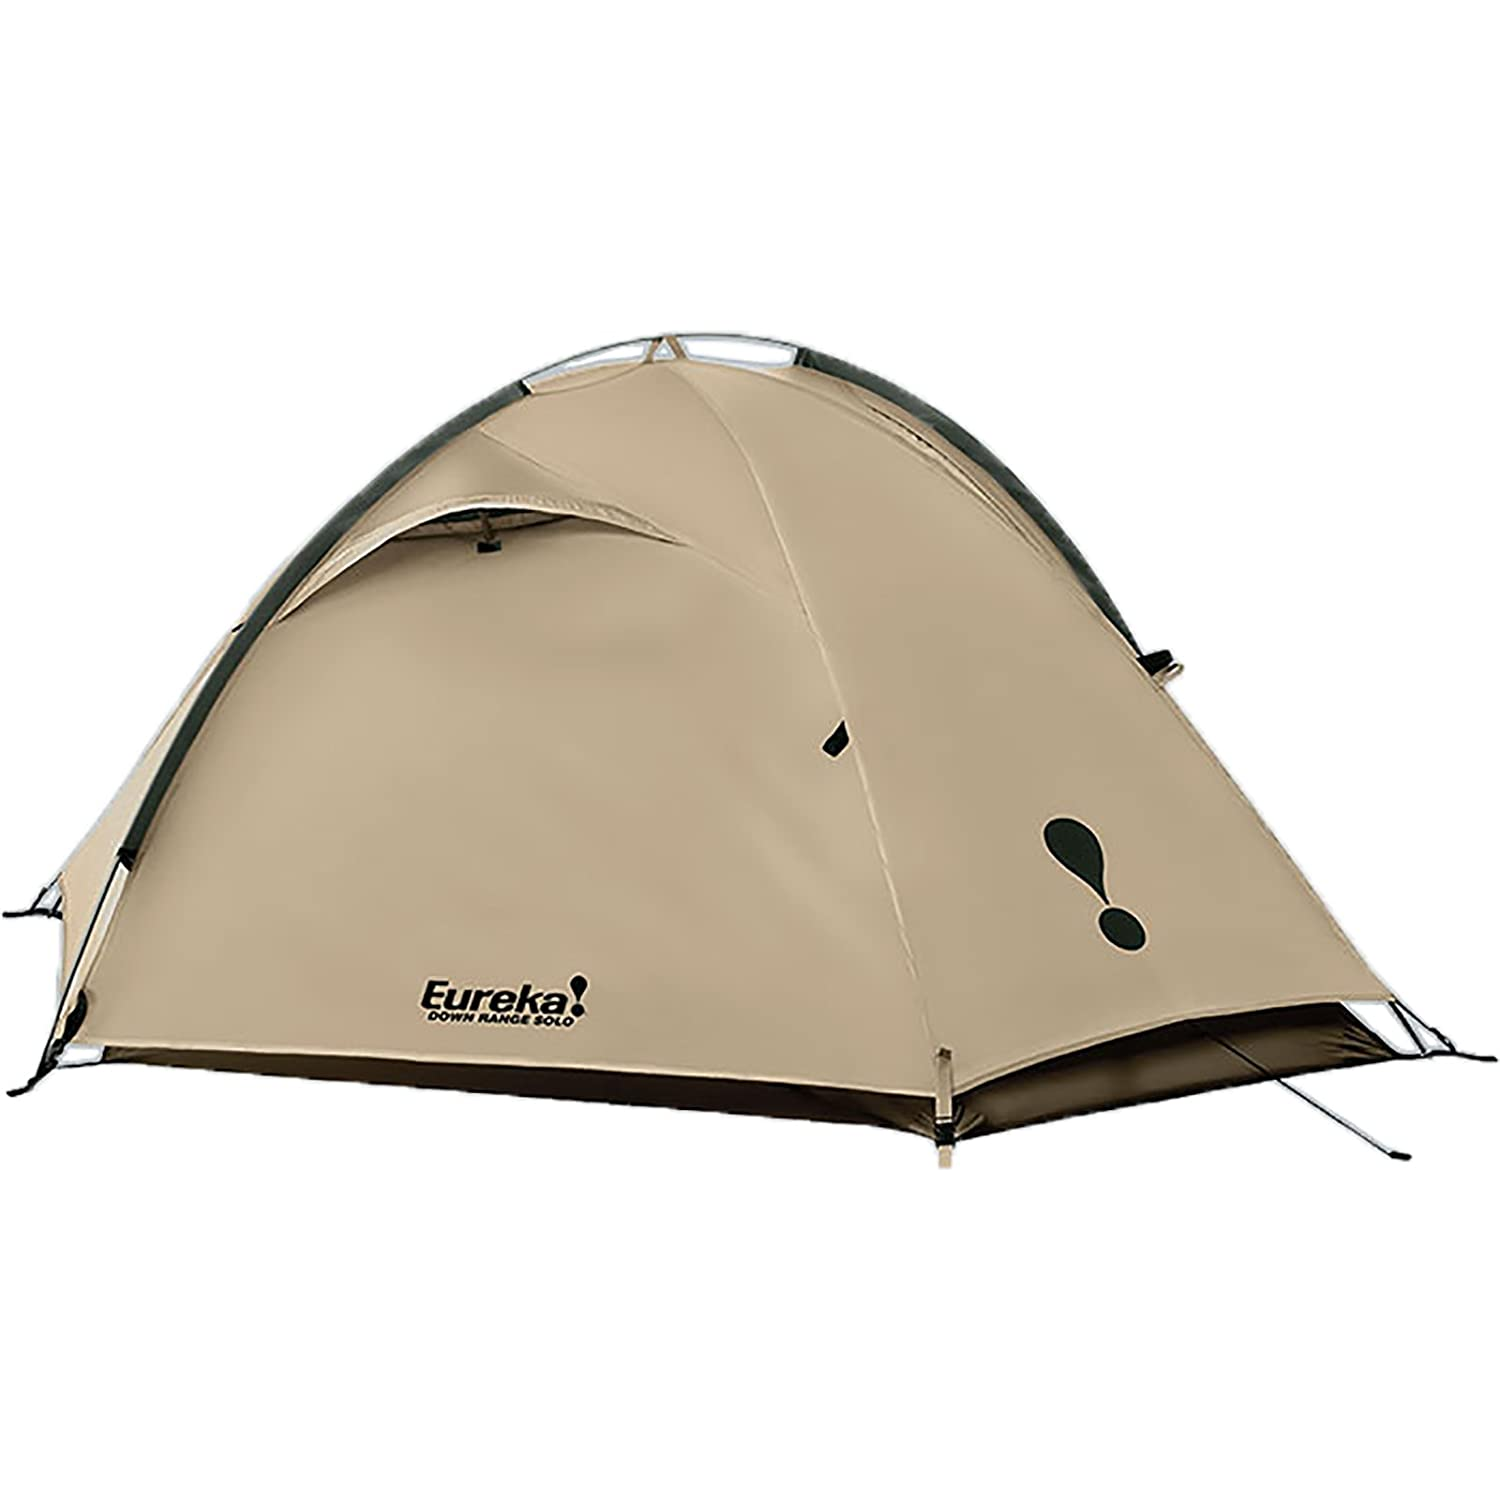 Eureka Down Range Solo - 1 Person Tactical (TCOP) Tent  sc 1 st  Amazon.com : eureka 3 person tent - memphite.com